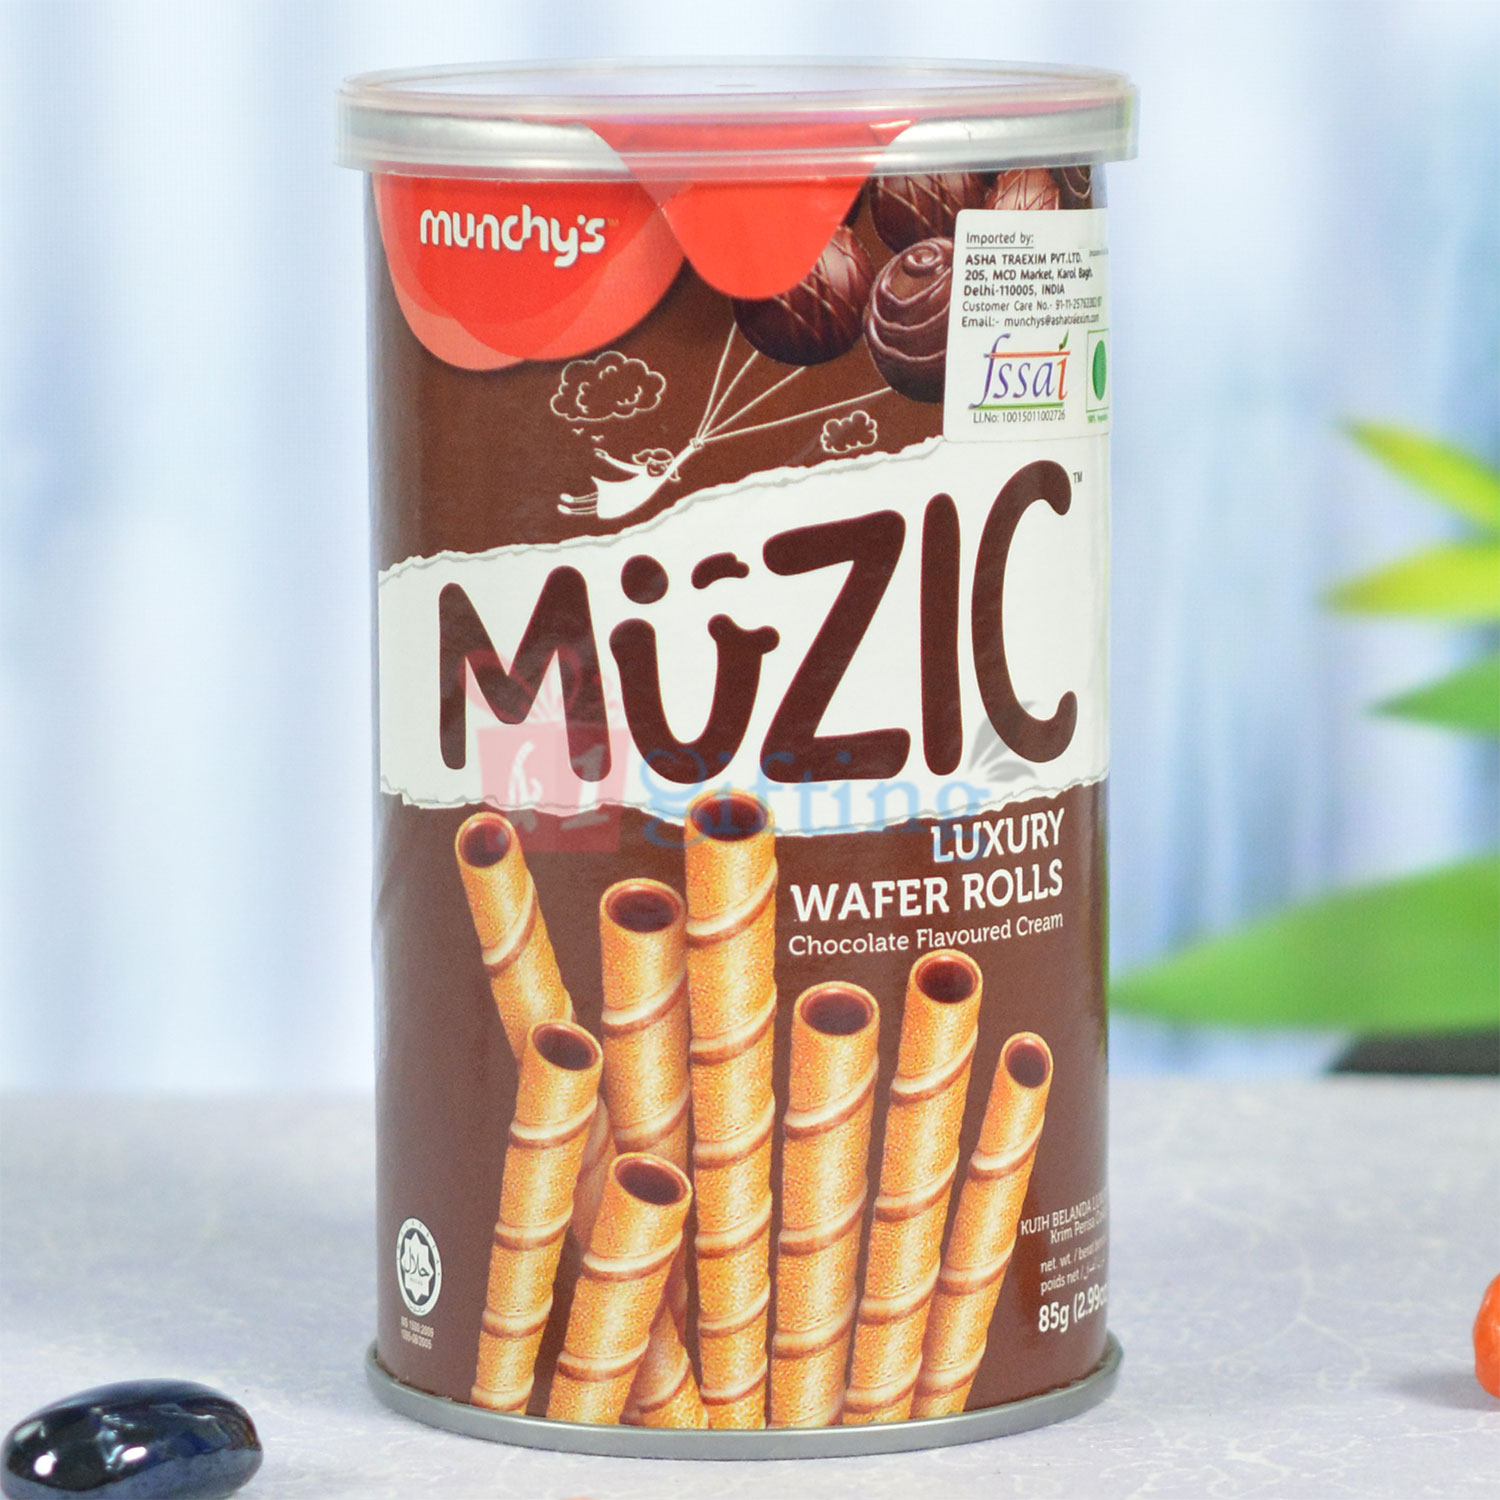 Munchys Muzic Luxury Wafer Rolls